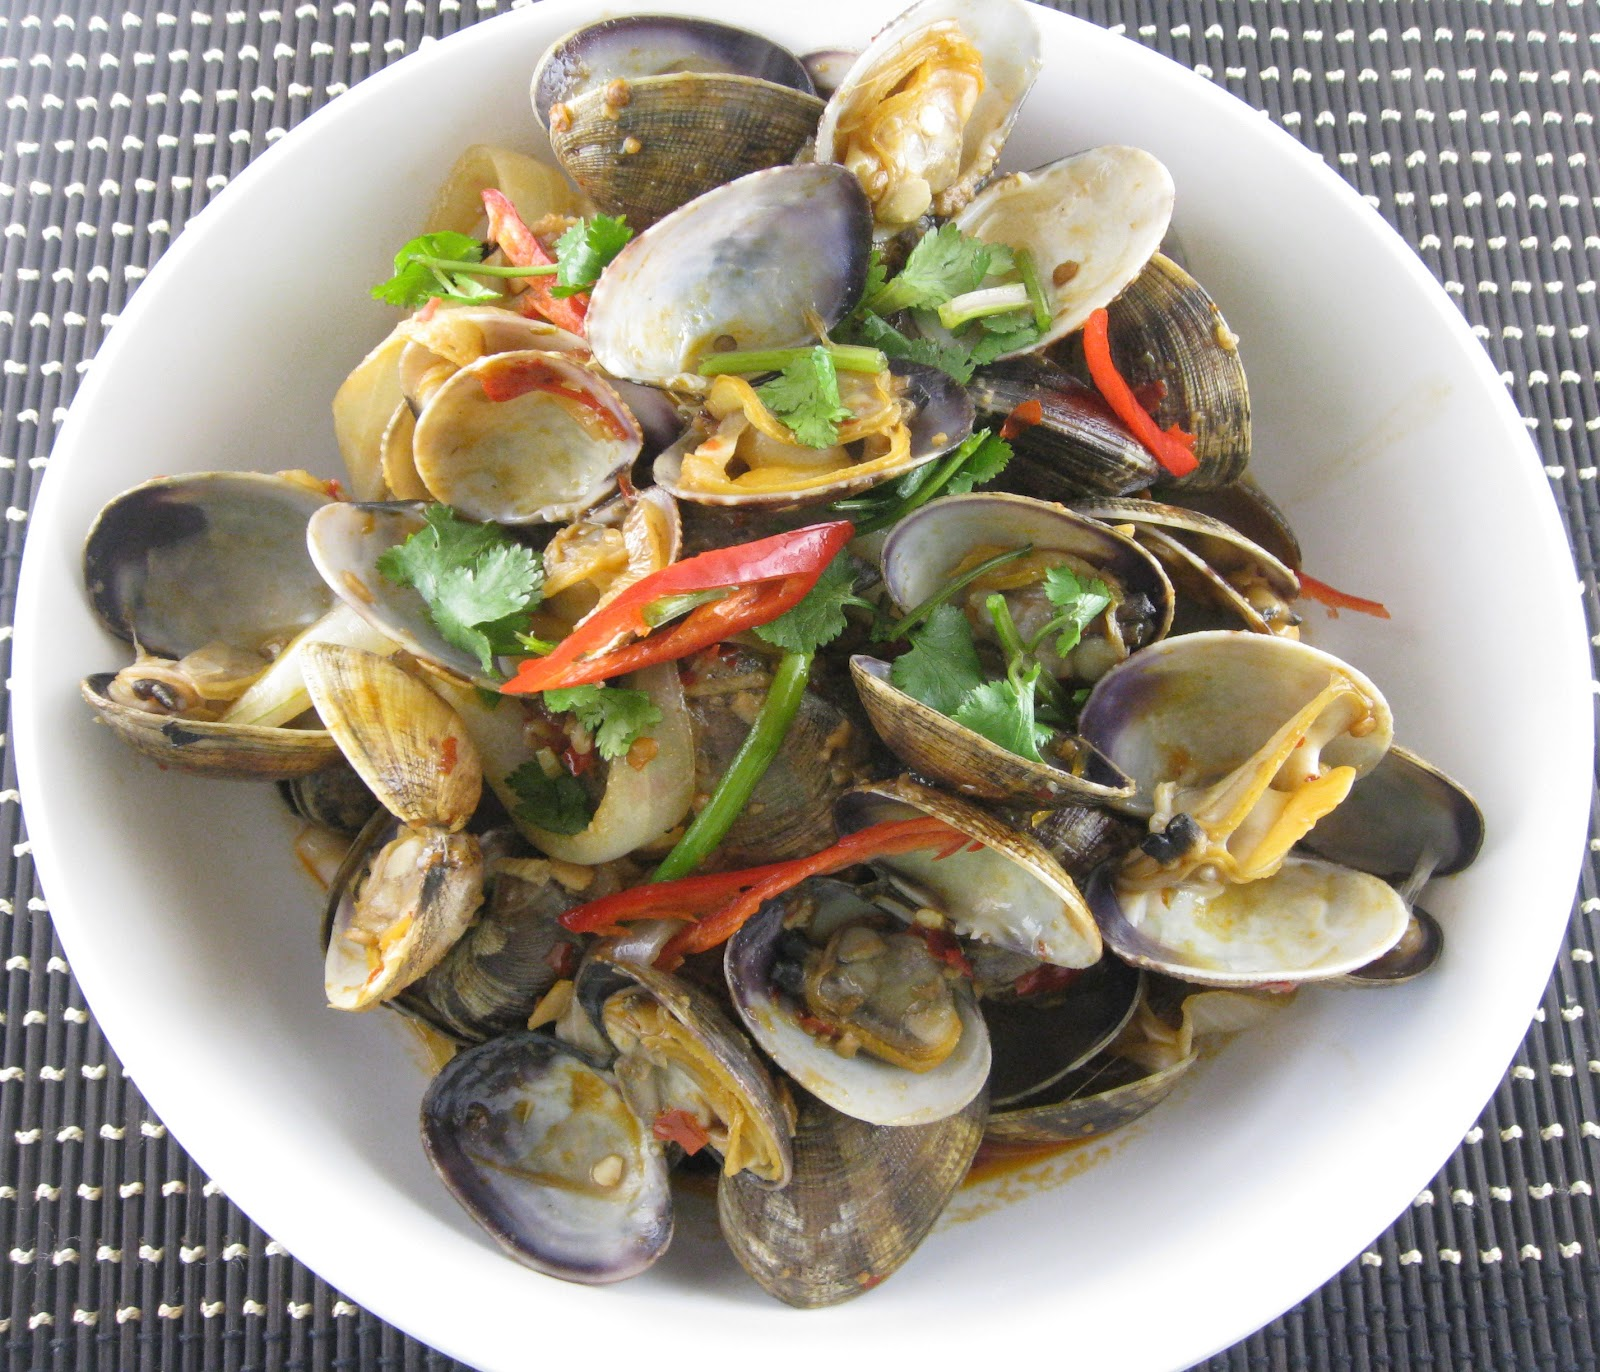 my asian kitchen: stir-fry little neck clams in chili sauce